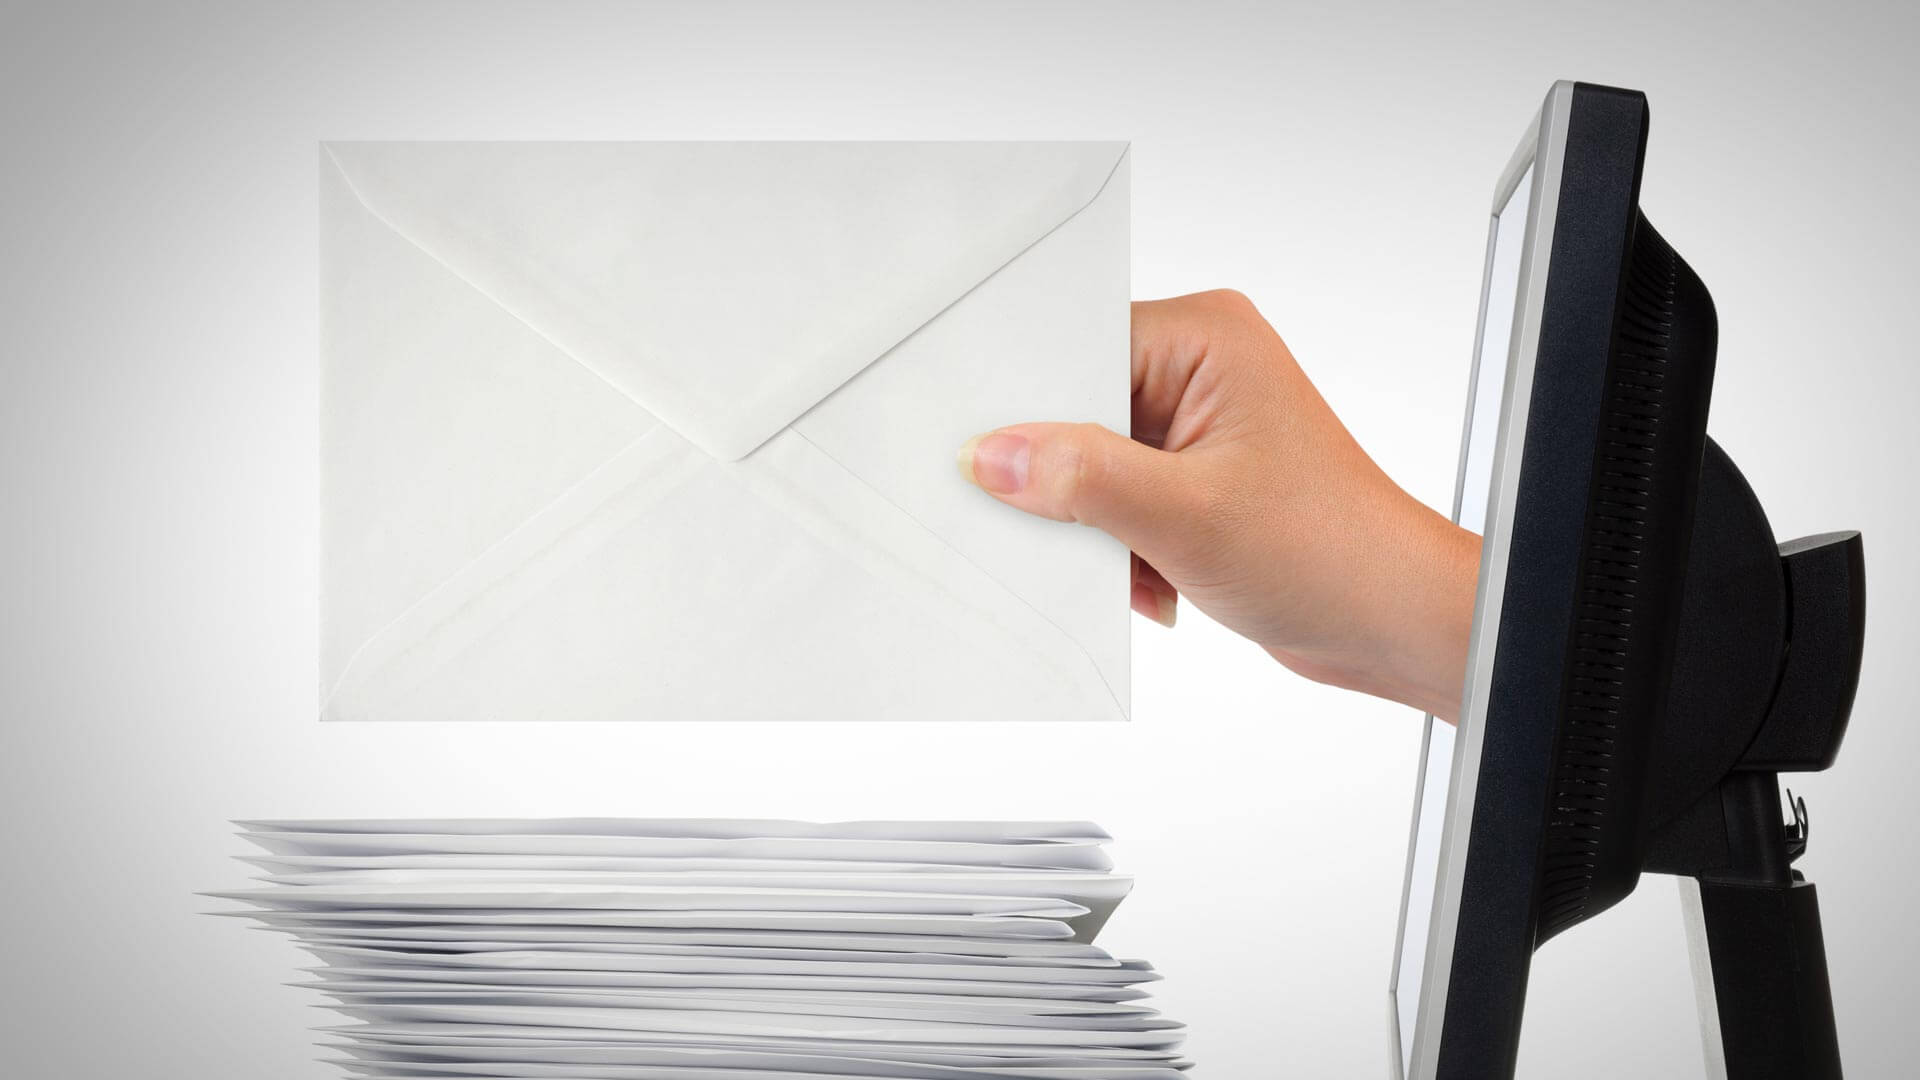 CAN-SPAM Mistakes to avoid in Email Marketing